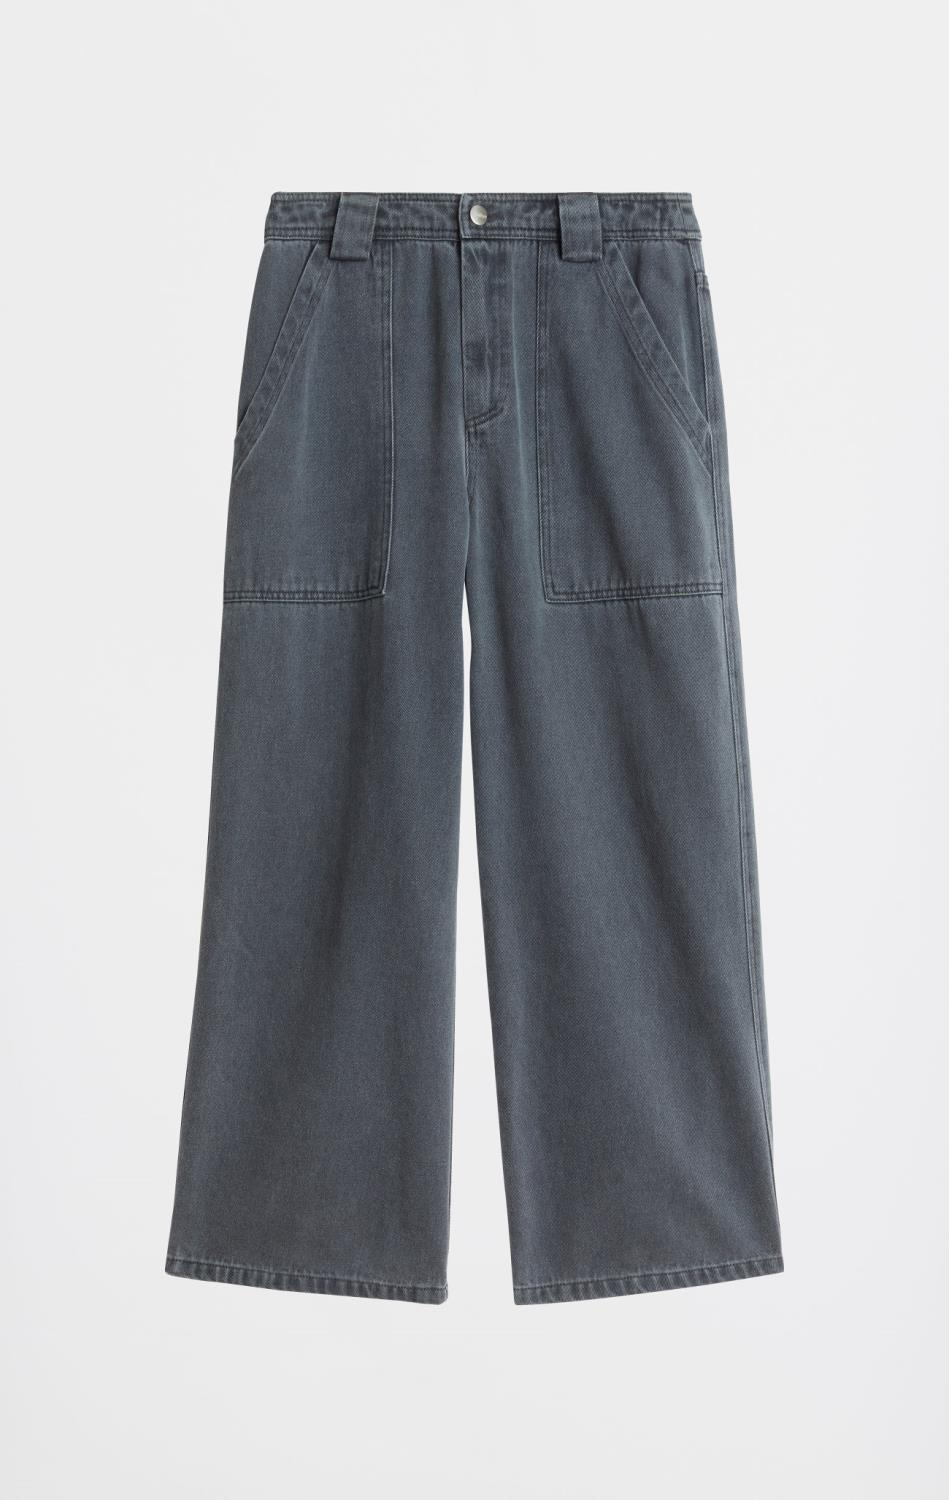 Rodebjer Mirari Washed Pants